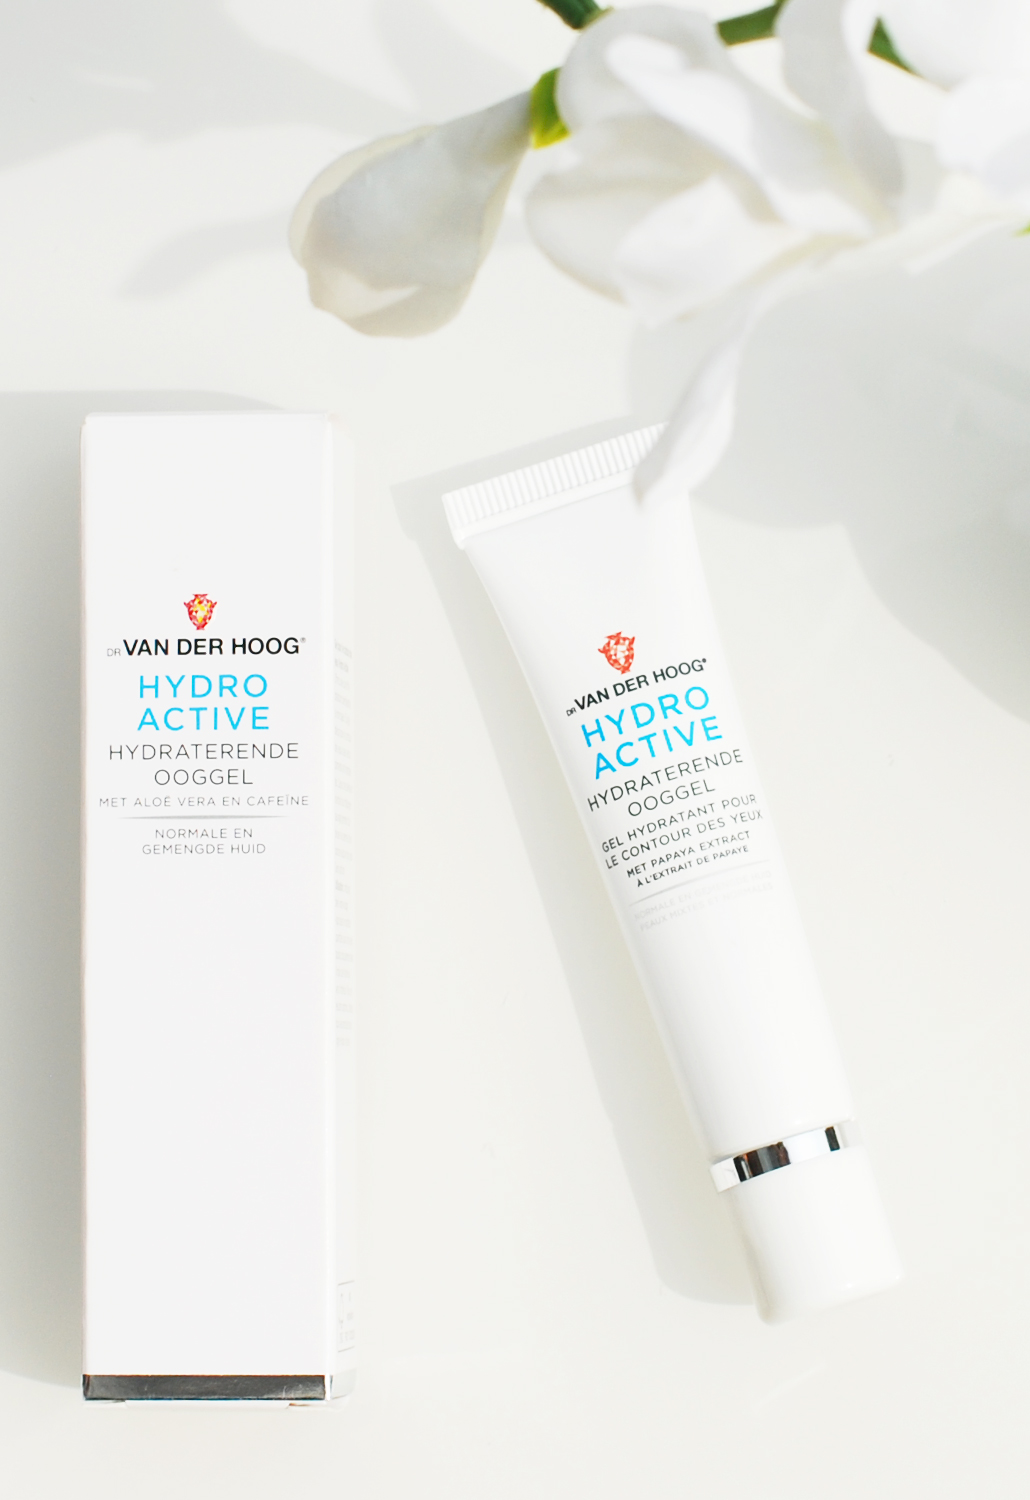 Dr van der hood hydro active hydraterende ooggel review lifestyle by linda